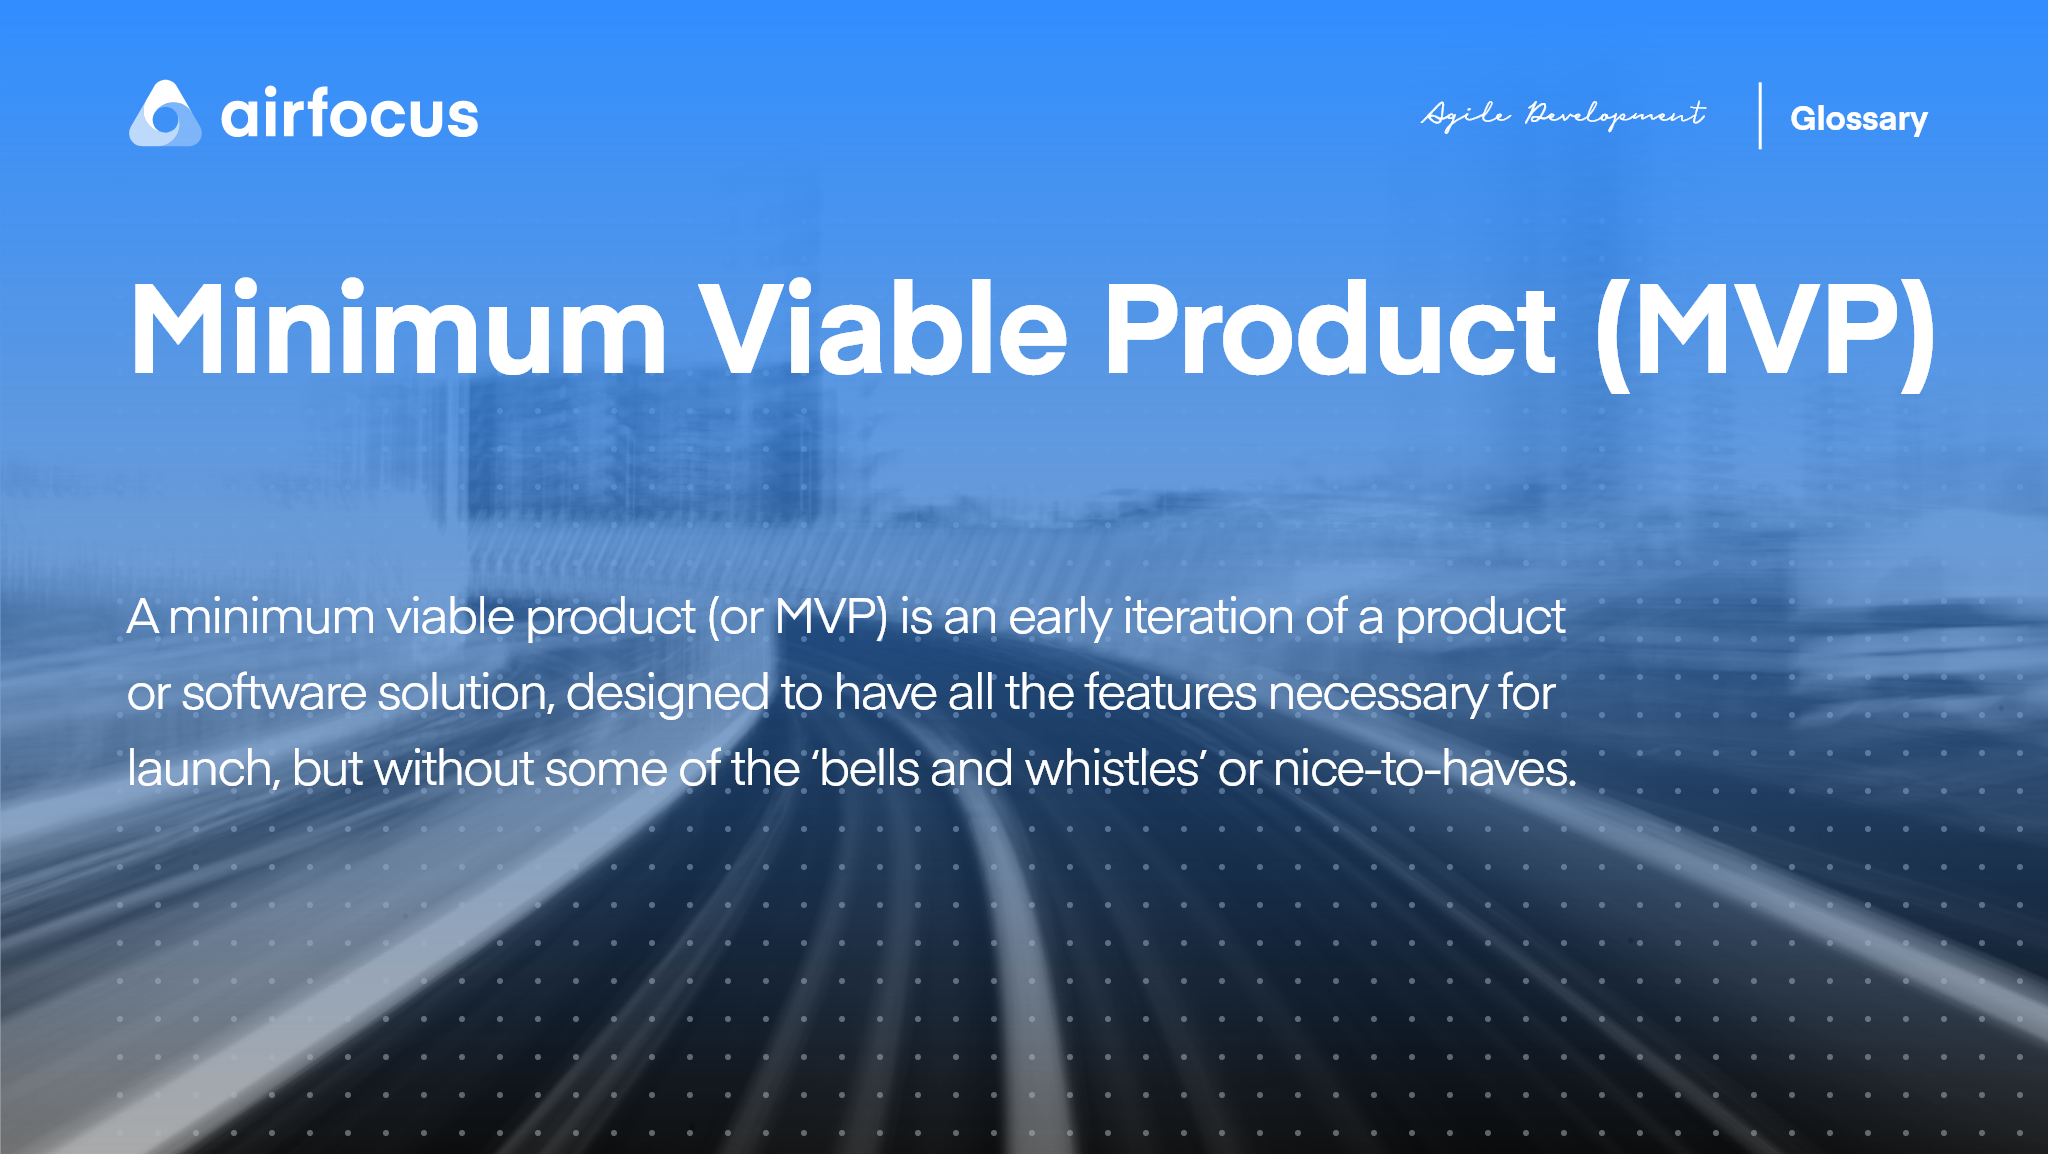 What Is A Minimum Viable Product (MVP)